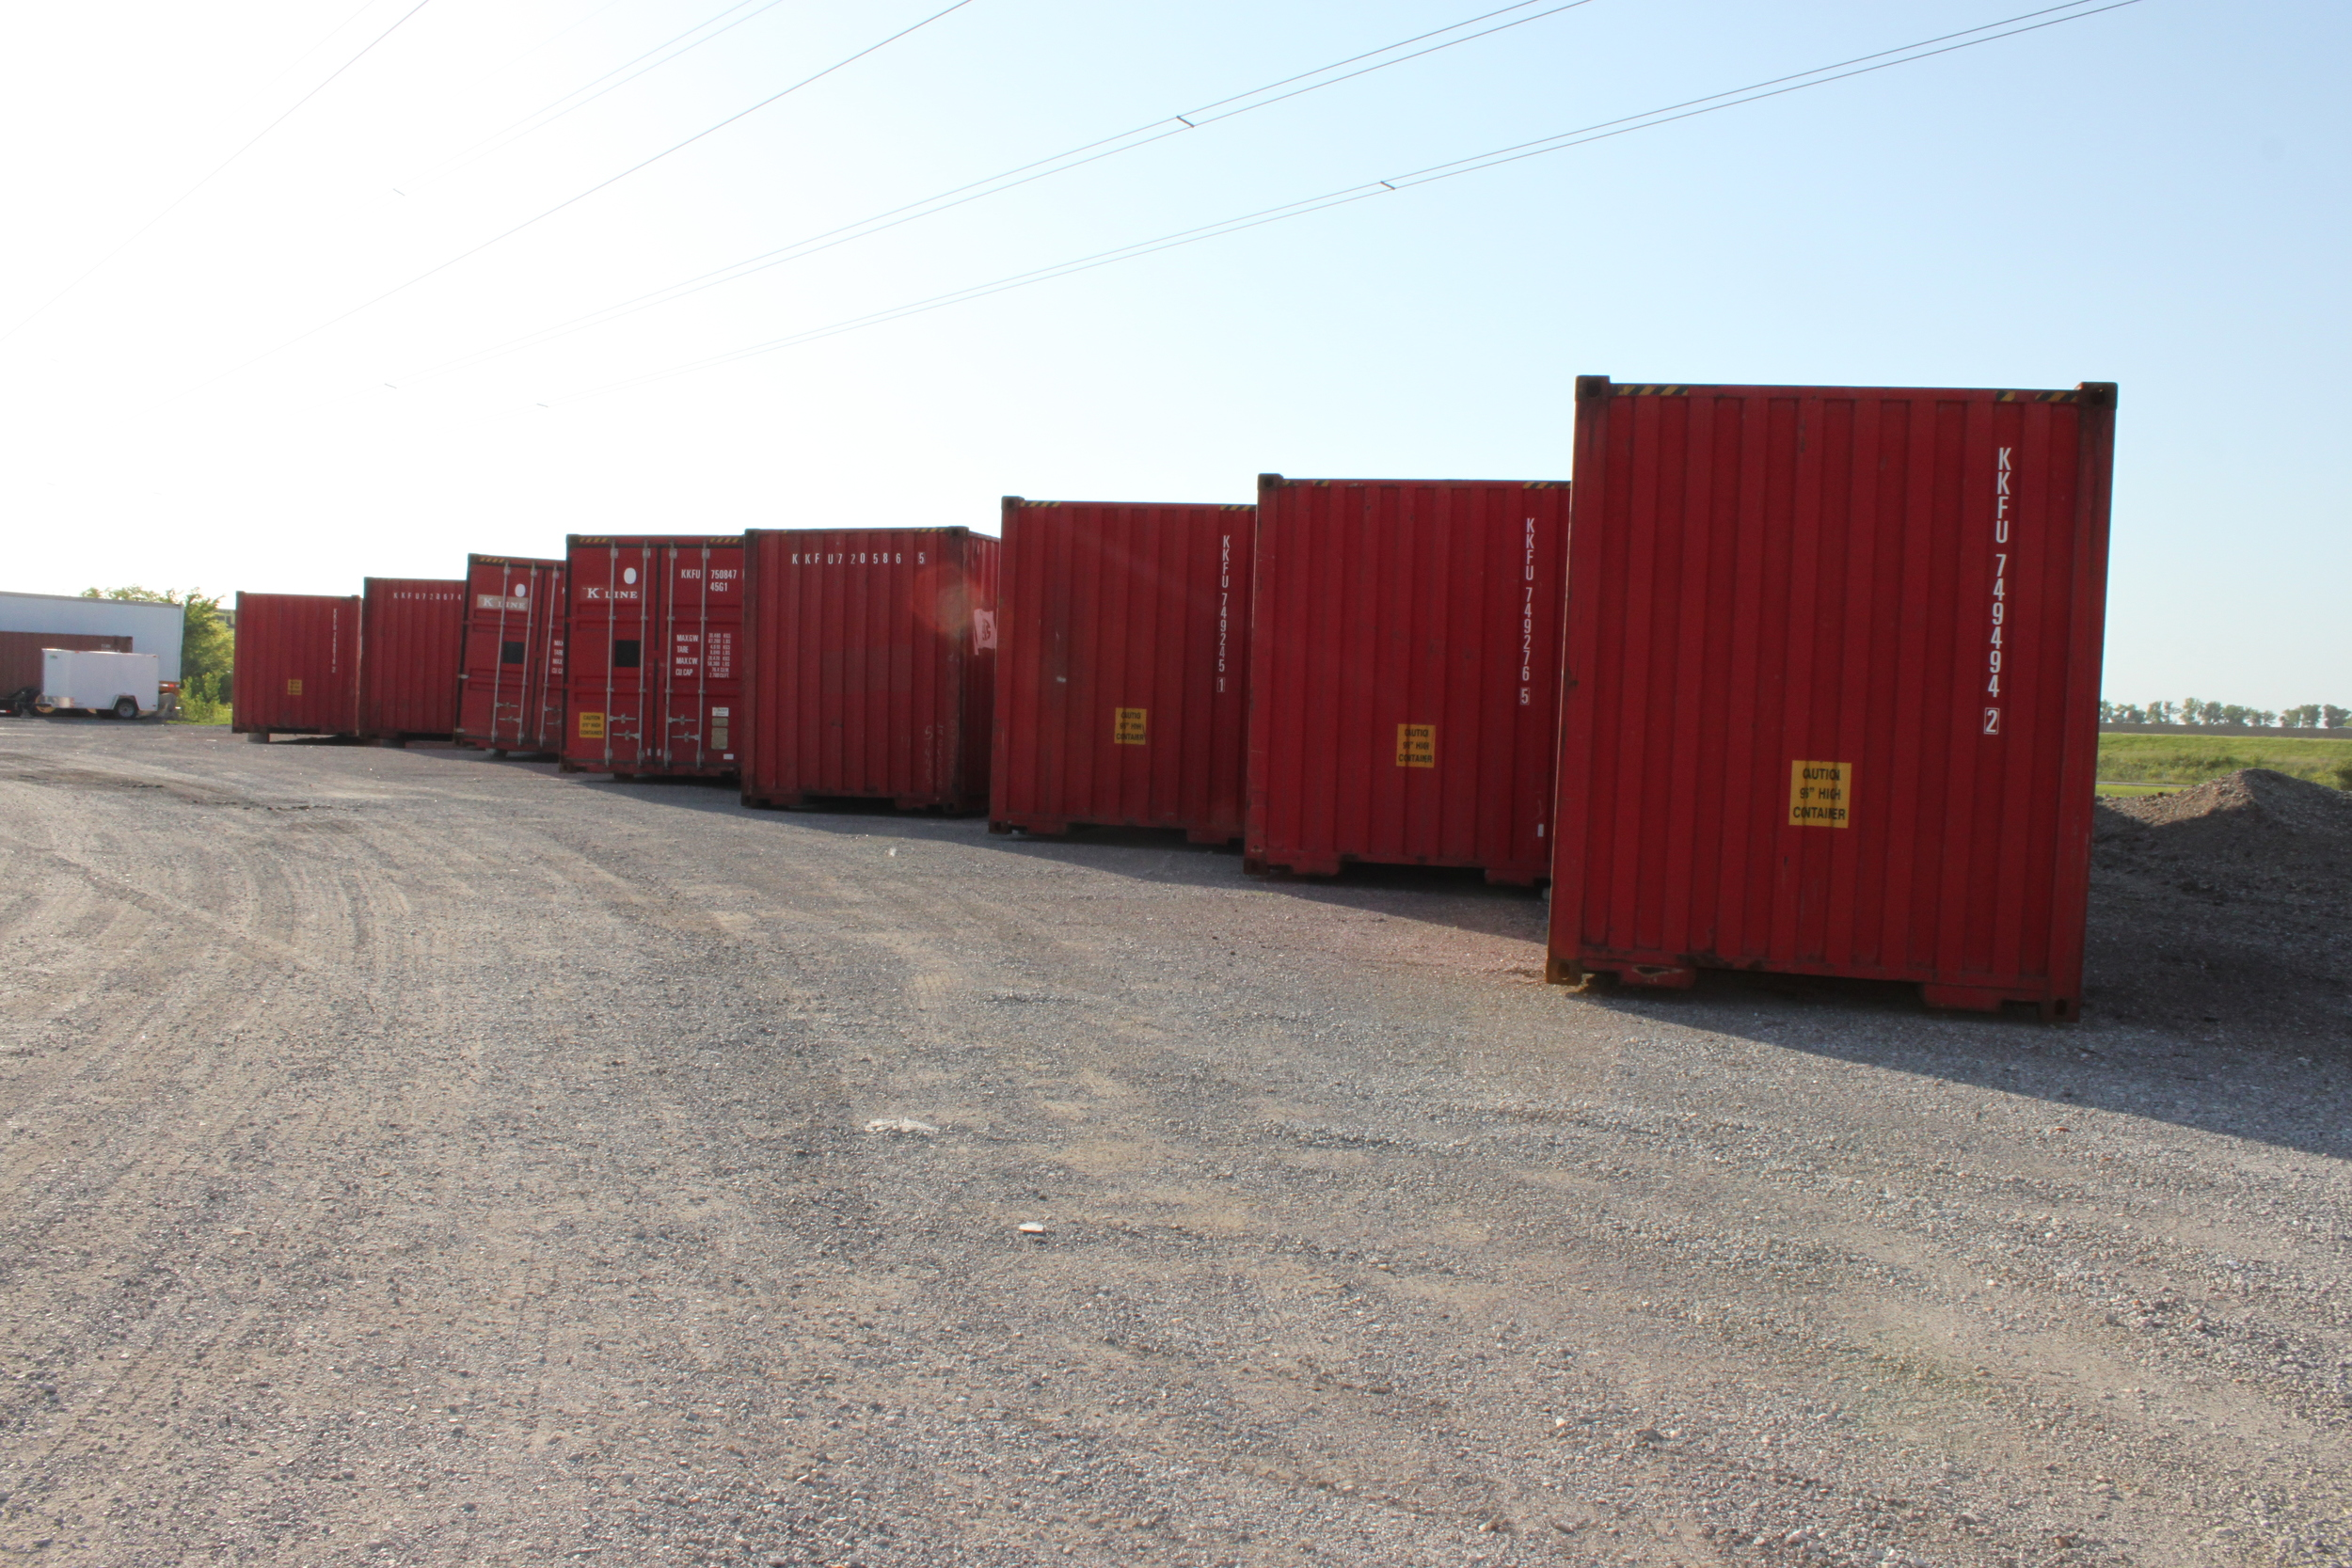 Staged containers